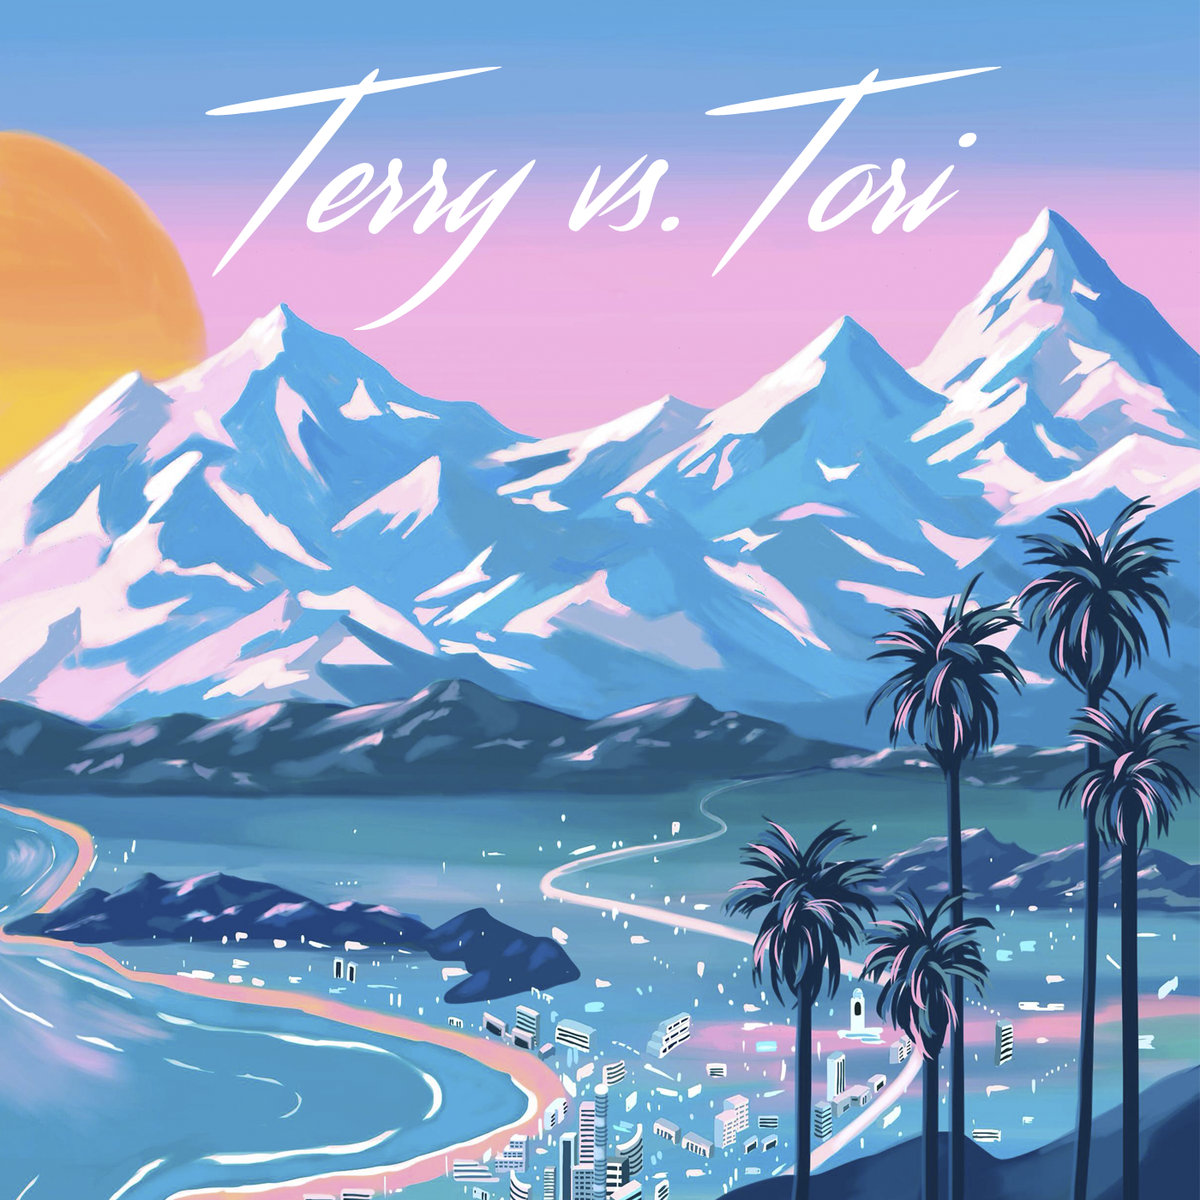 terry vs tori album art